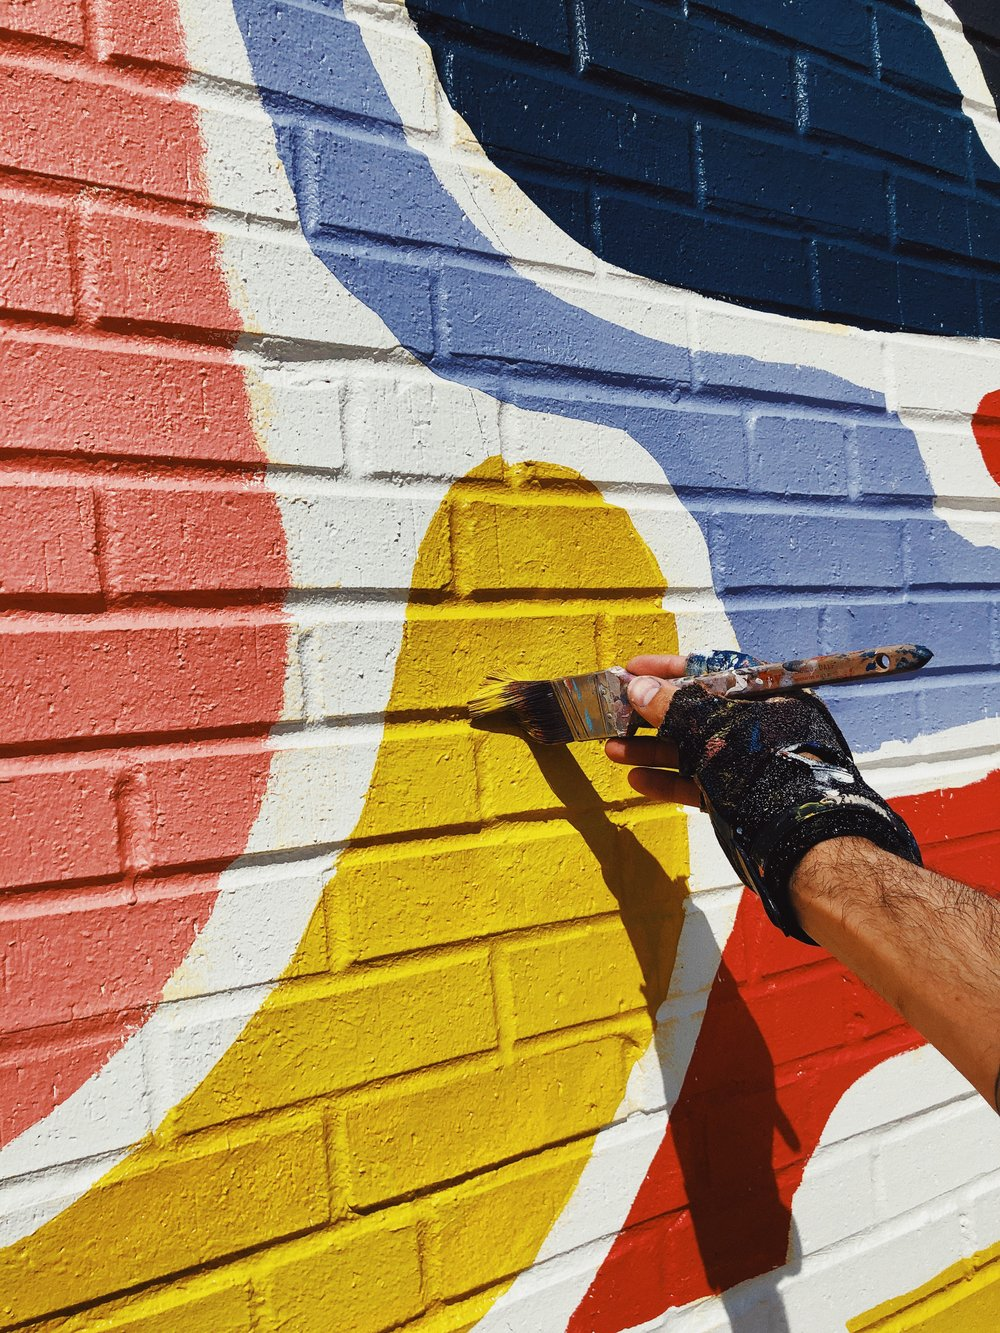 Kyle Steed painting mural at Firehouse.GP in Grand Prairie, TX